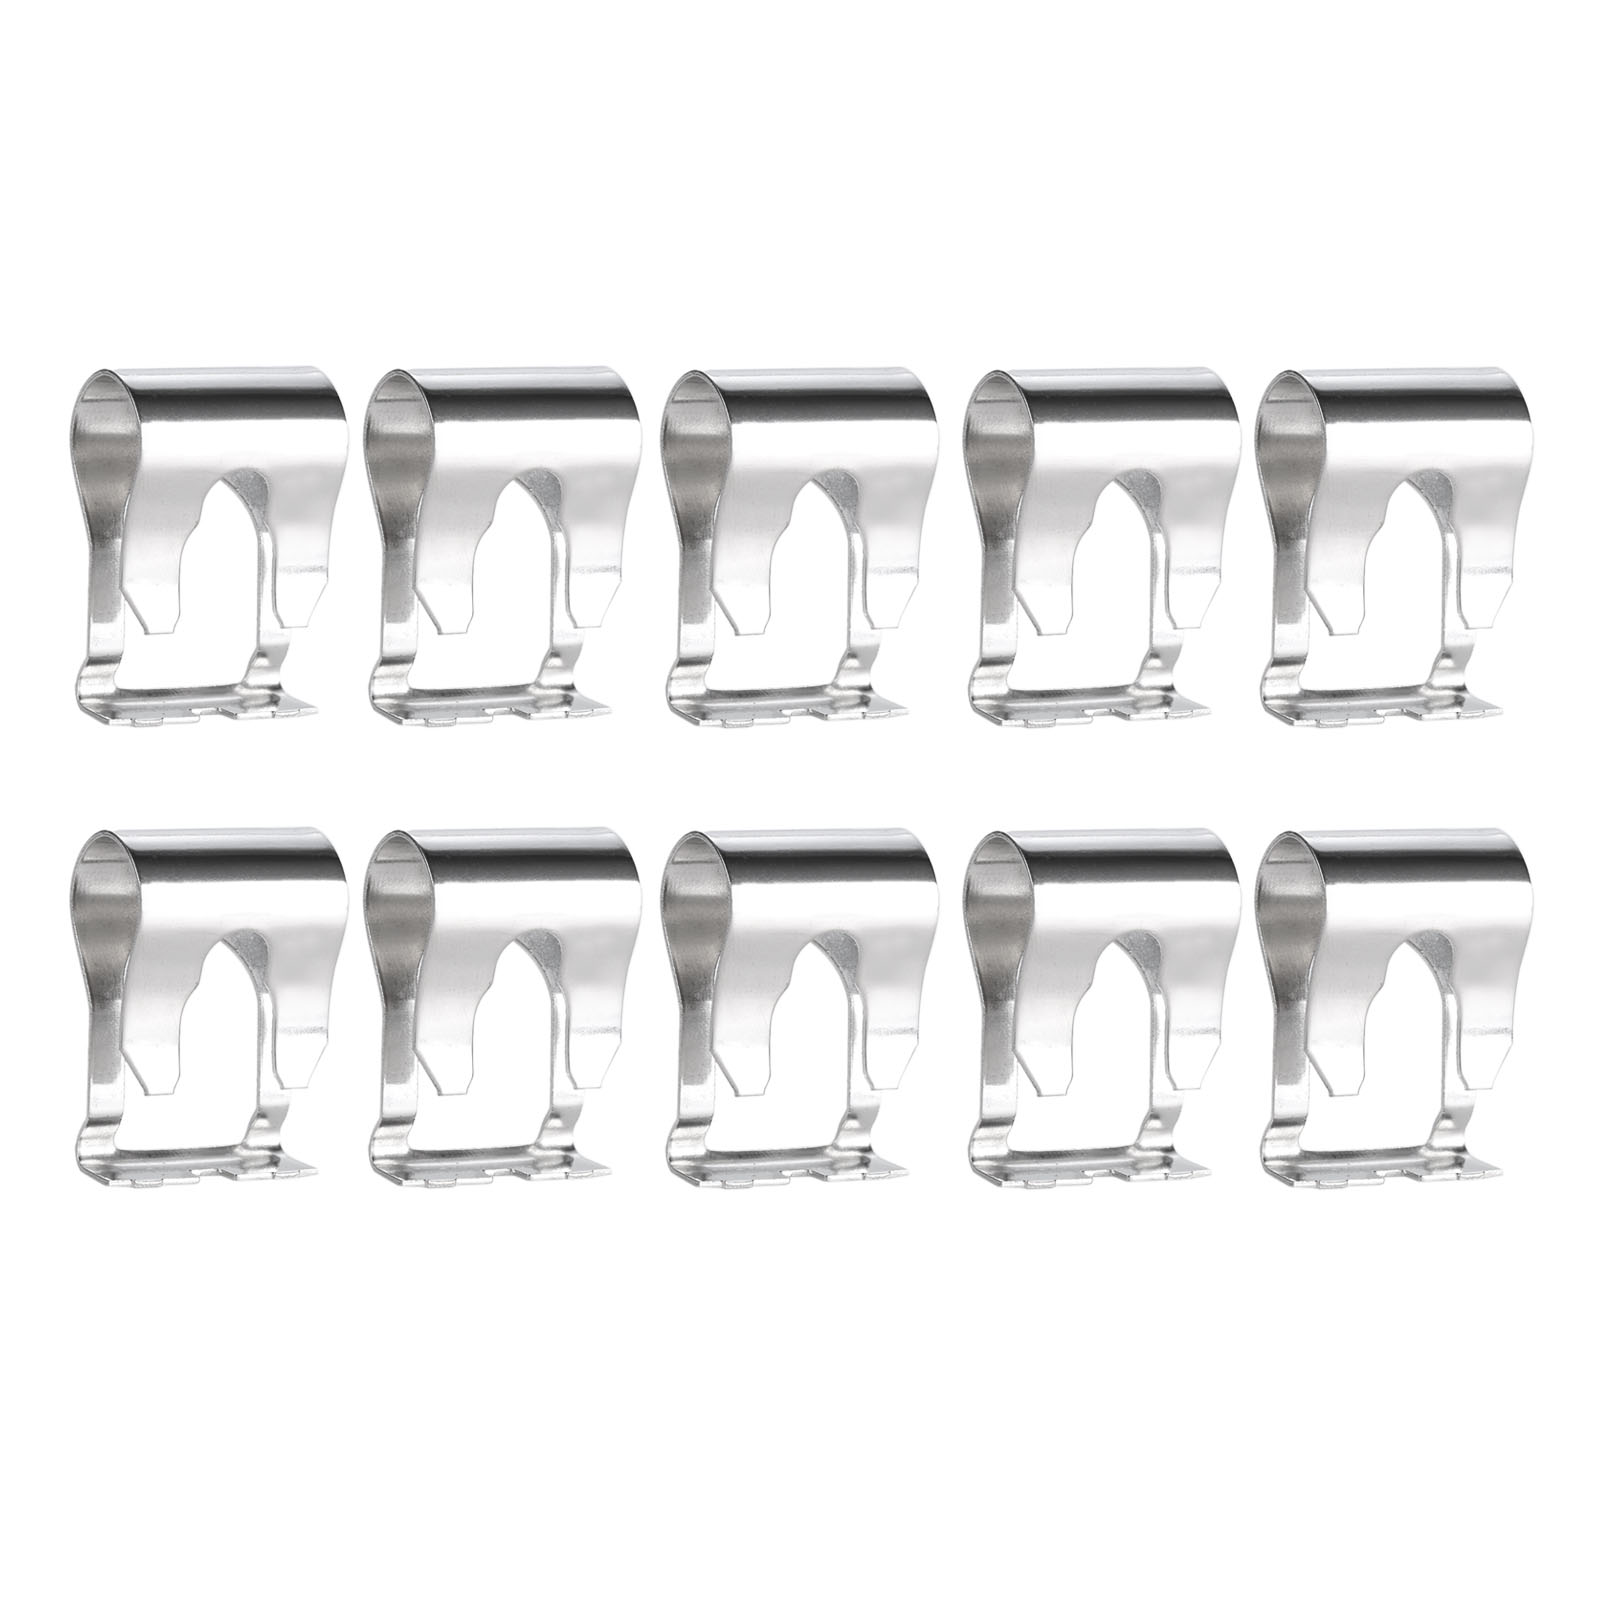 mitsooning 10Pcs Car Windshield Windscreen Wiper Linkage Repair Clips For Auto Spring Repair Clamp Accessories